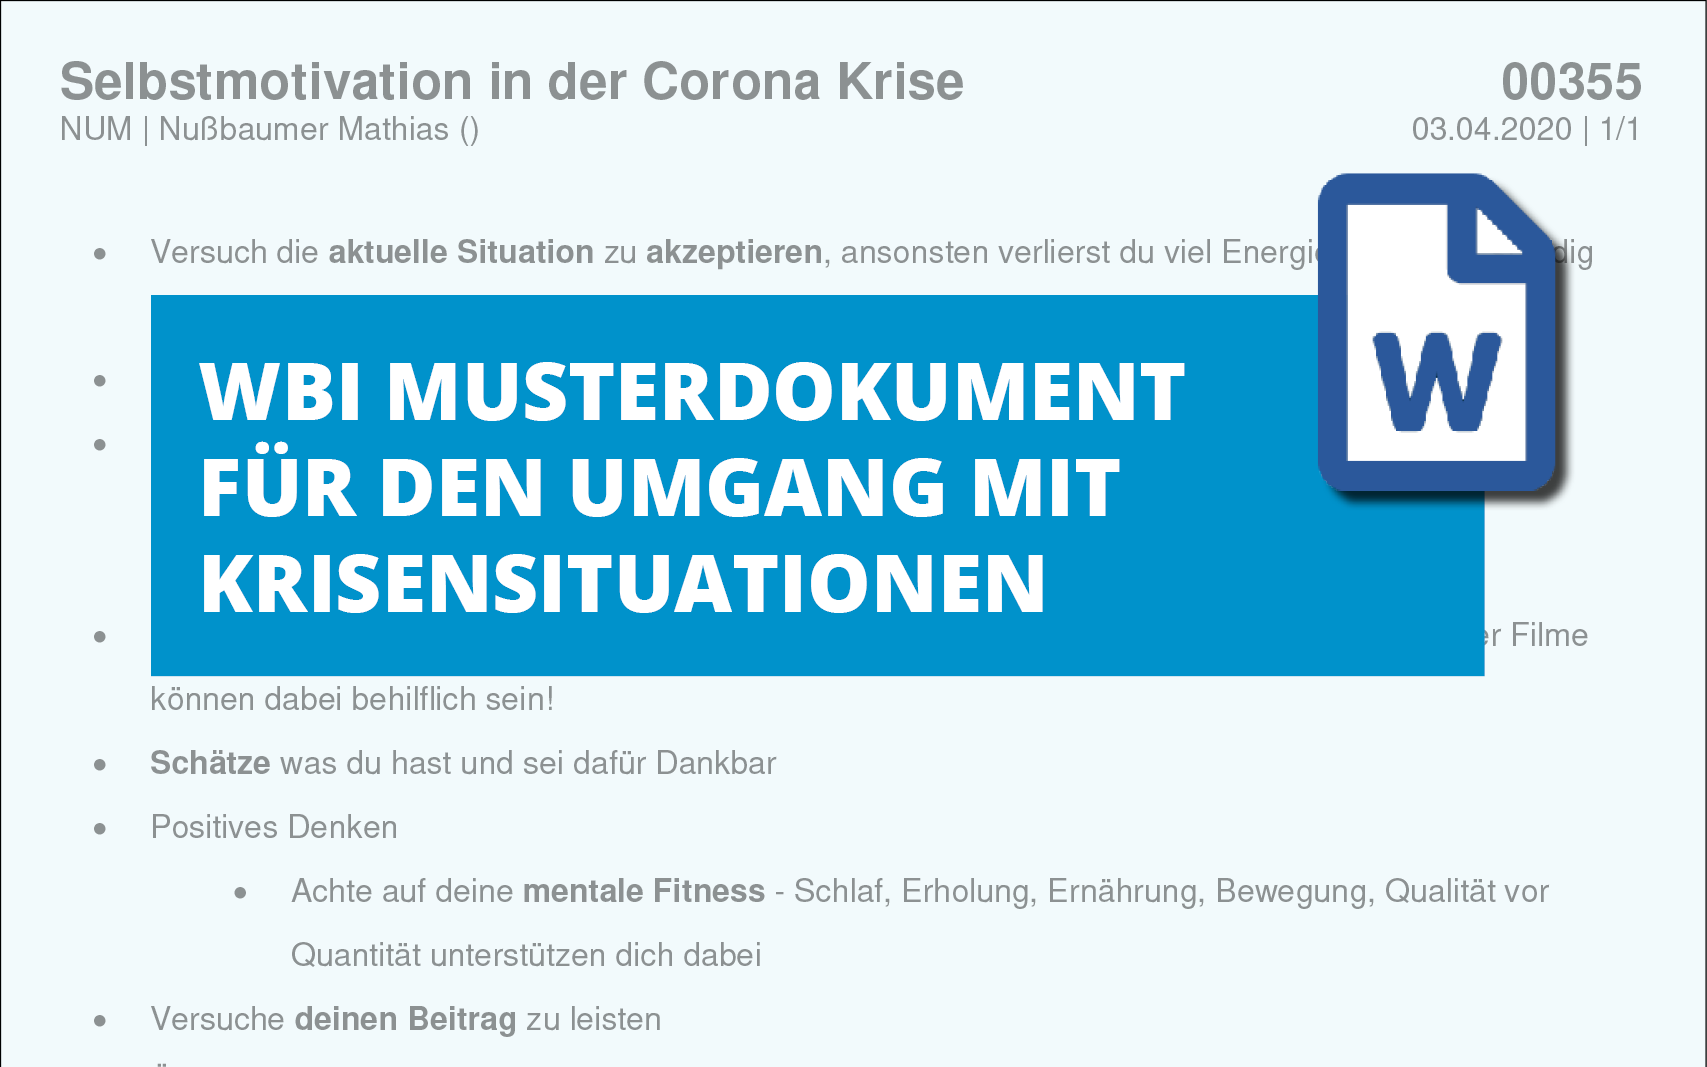 selbstmotivation-in-der-corona-krise